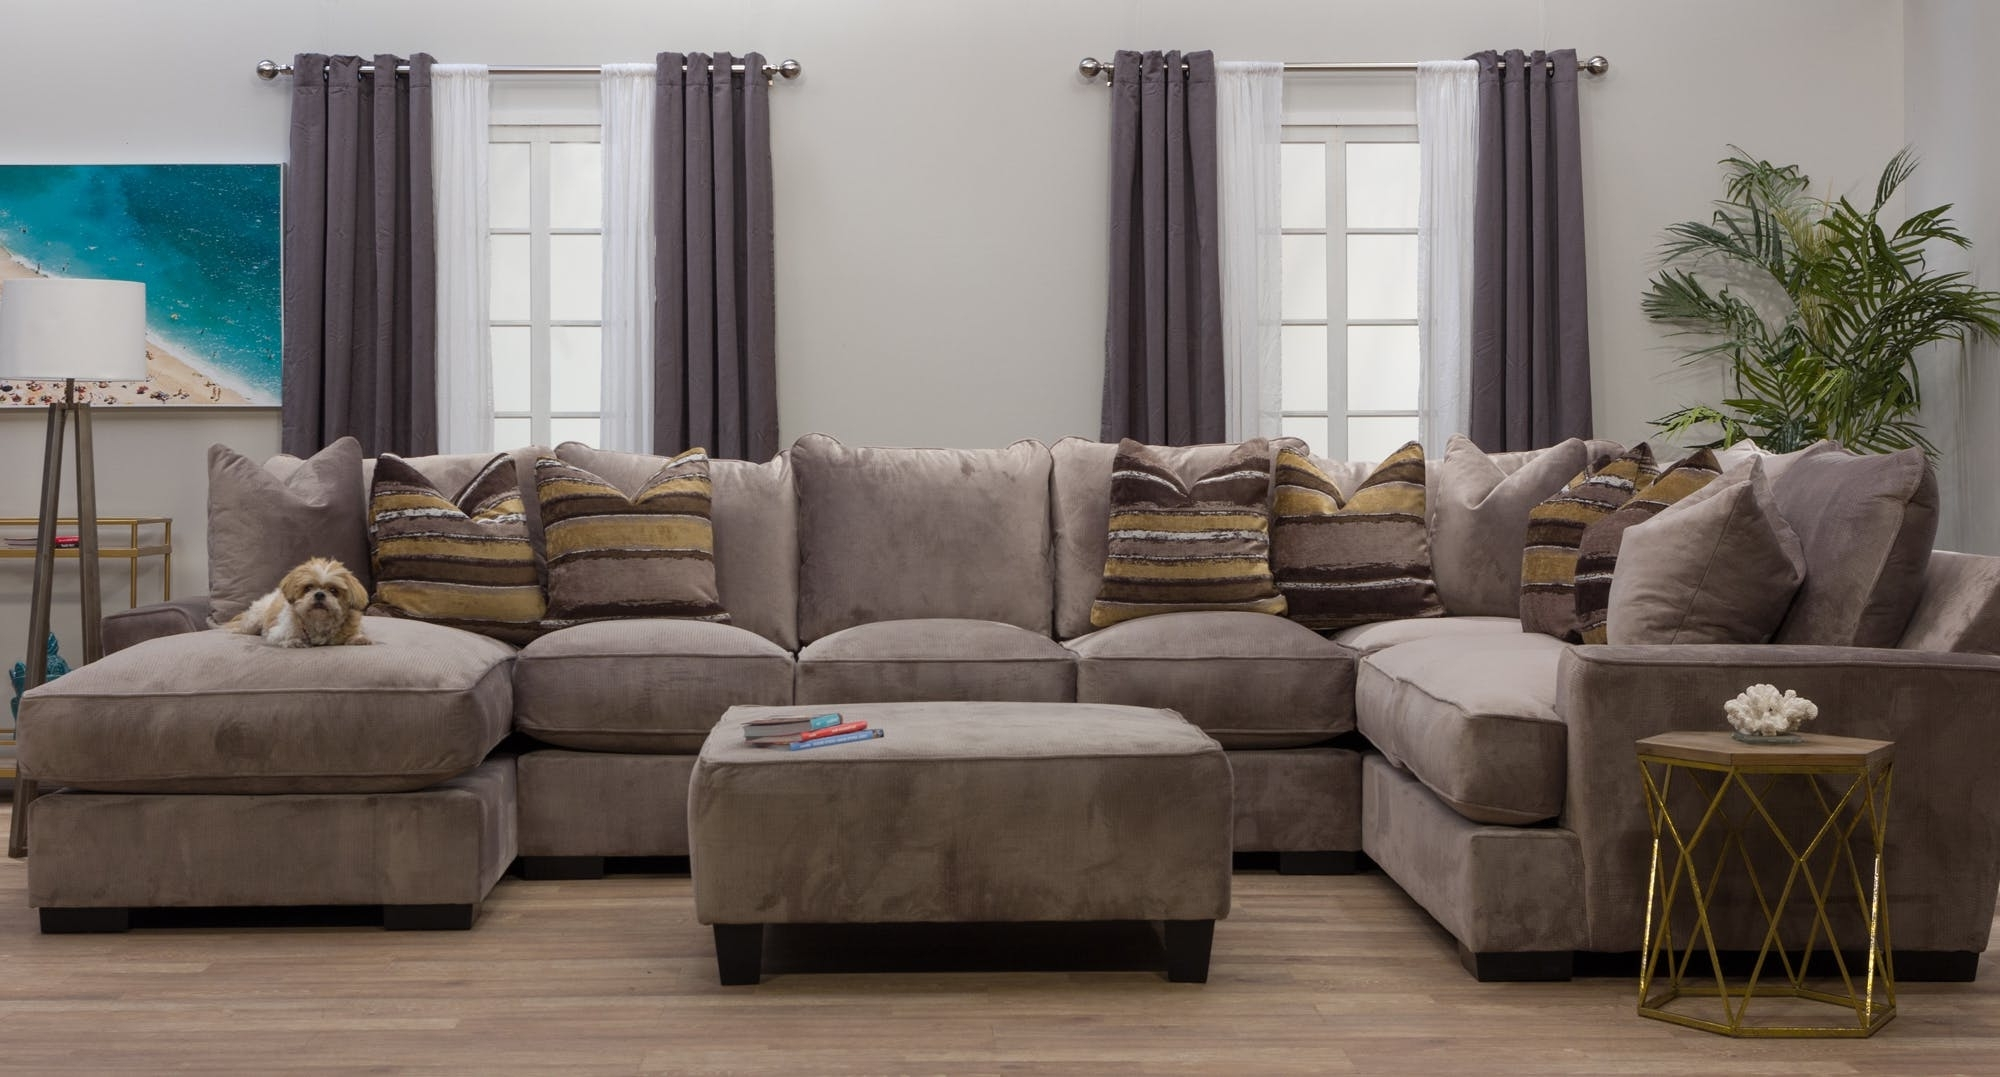 Preferred Dayton Ohio Sectional Sofas Intended For Michael Nicholas Designs Living Room Serendipity Right Chaise (View 12 of 15)